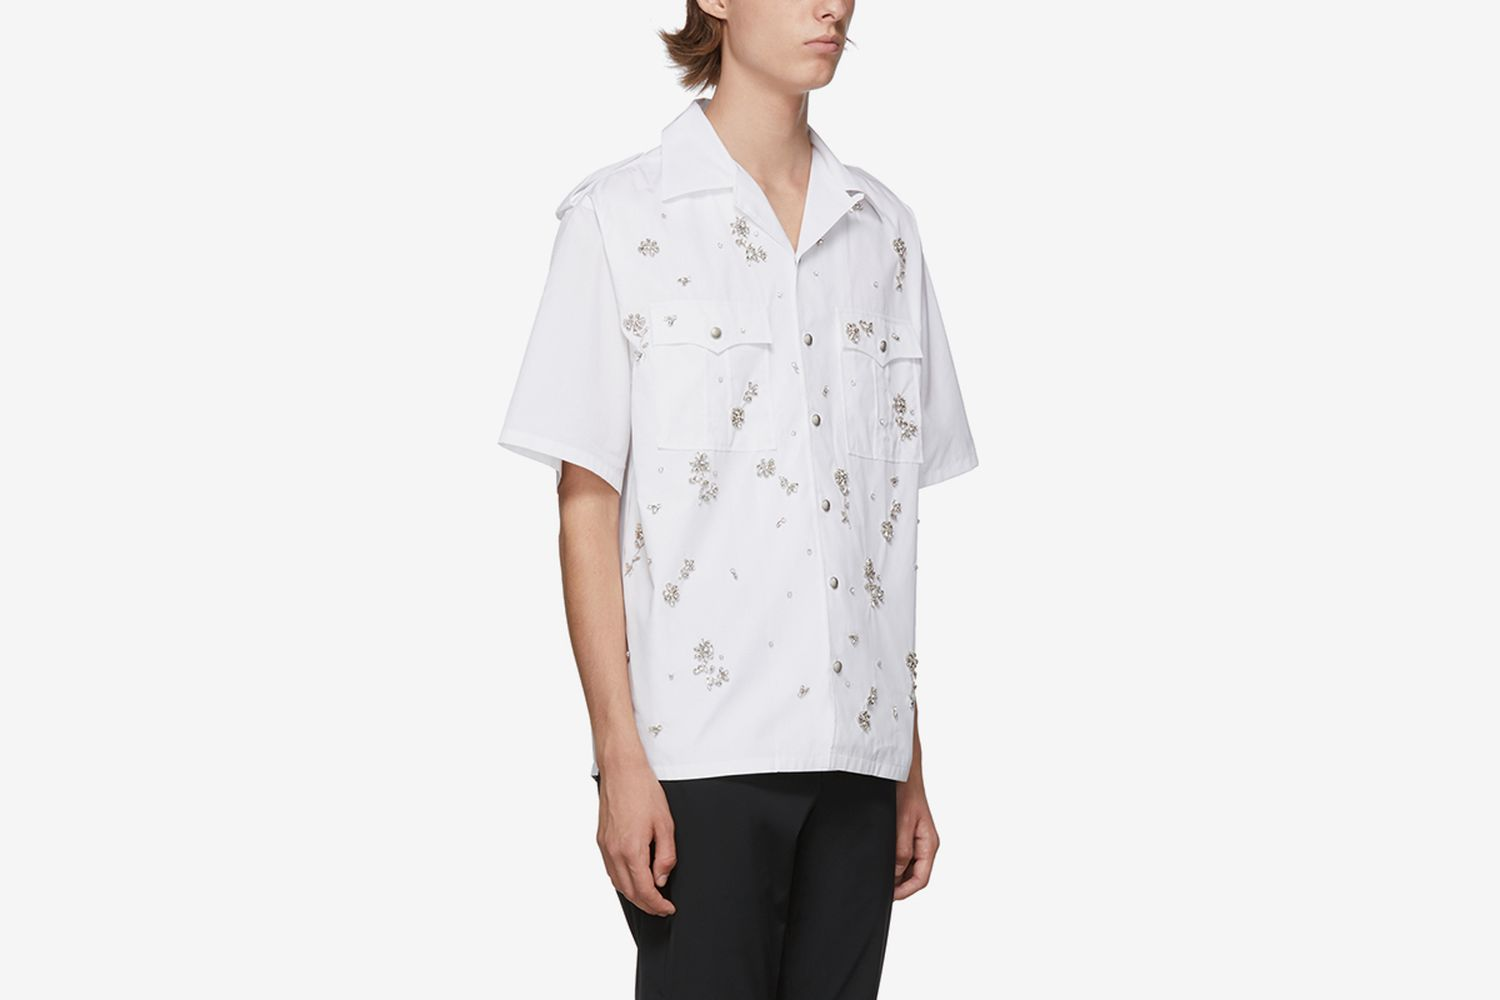 Crystal Bowling Shirt